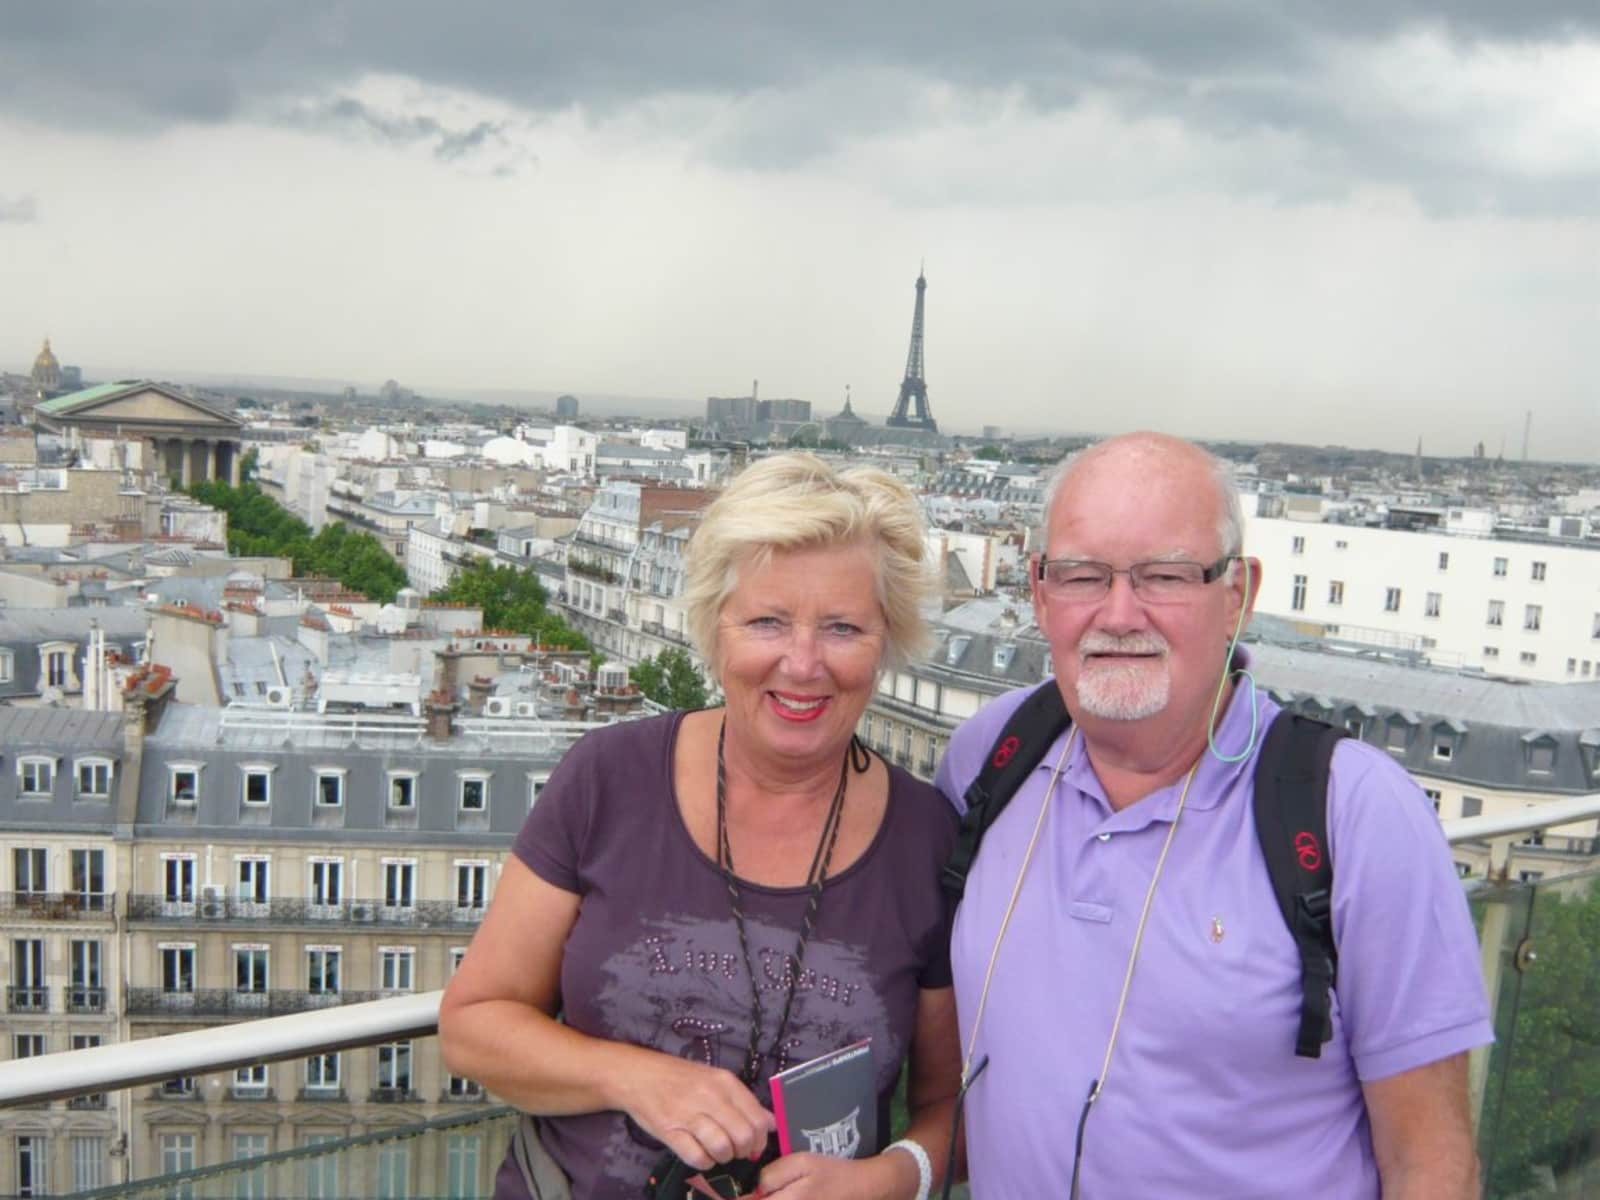 Brigitte & Frits from The Hague, Netherlands